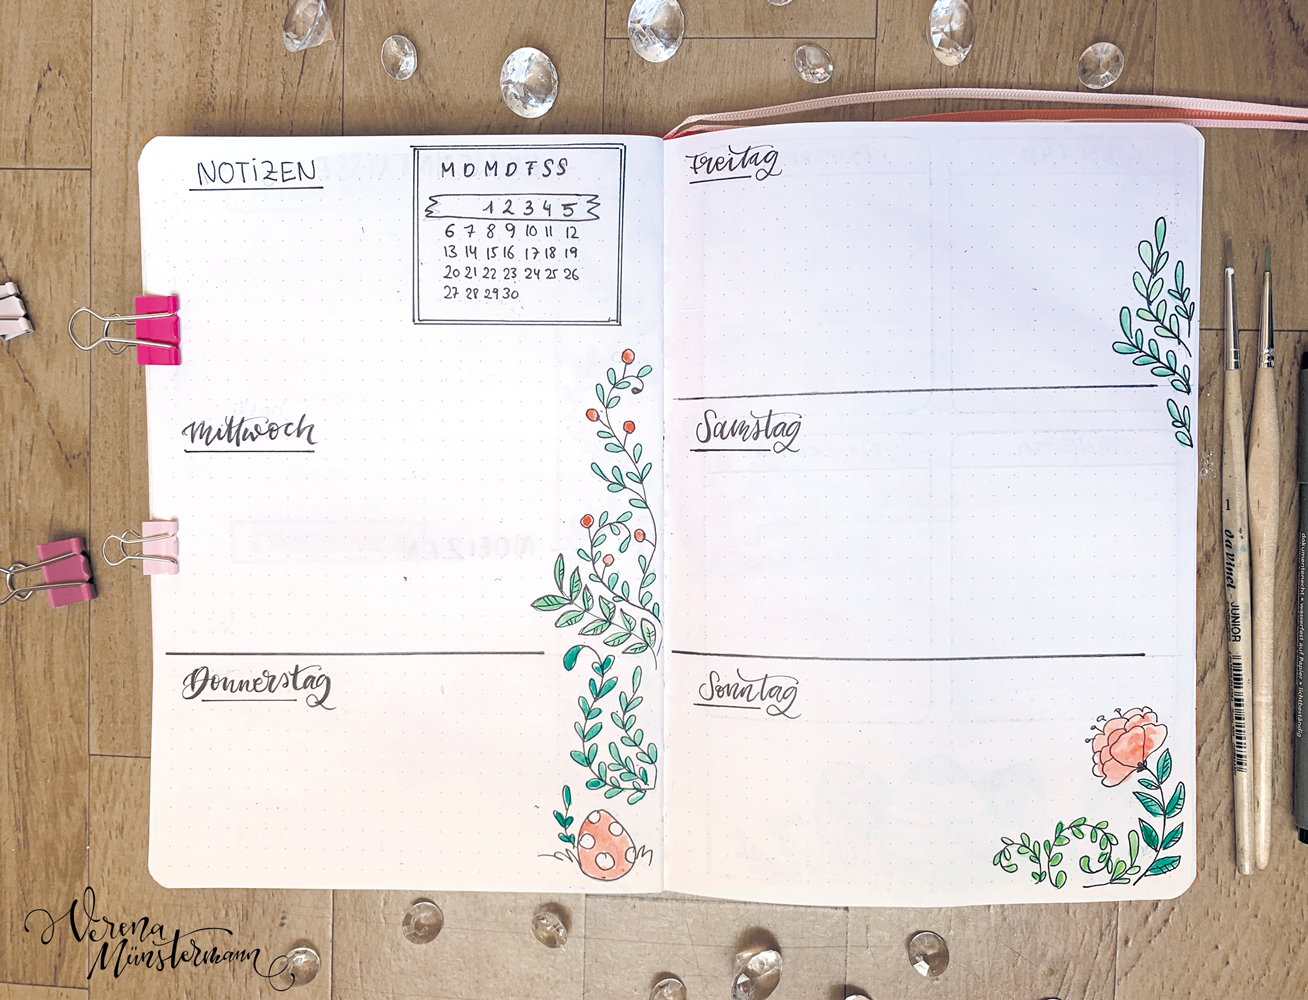 verenamuenstermann - Bullet Journal Setup - April 2020